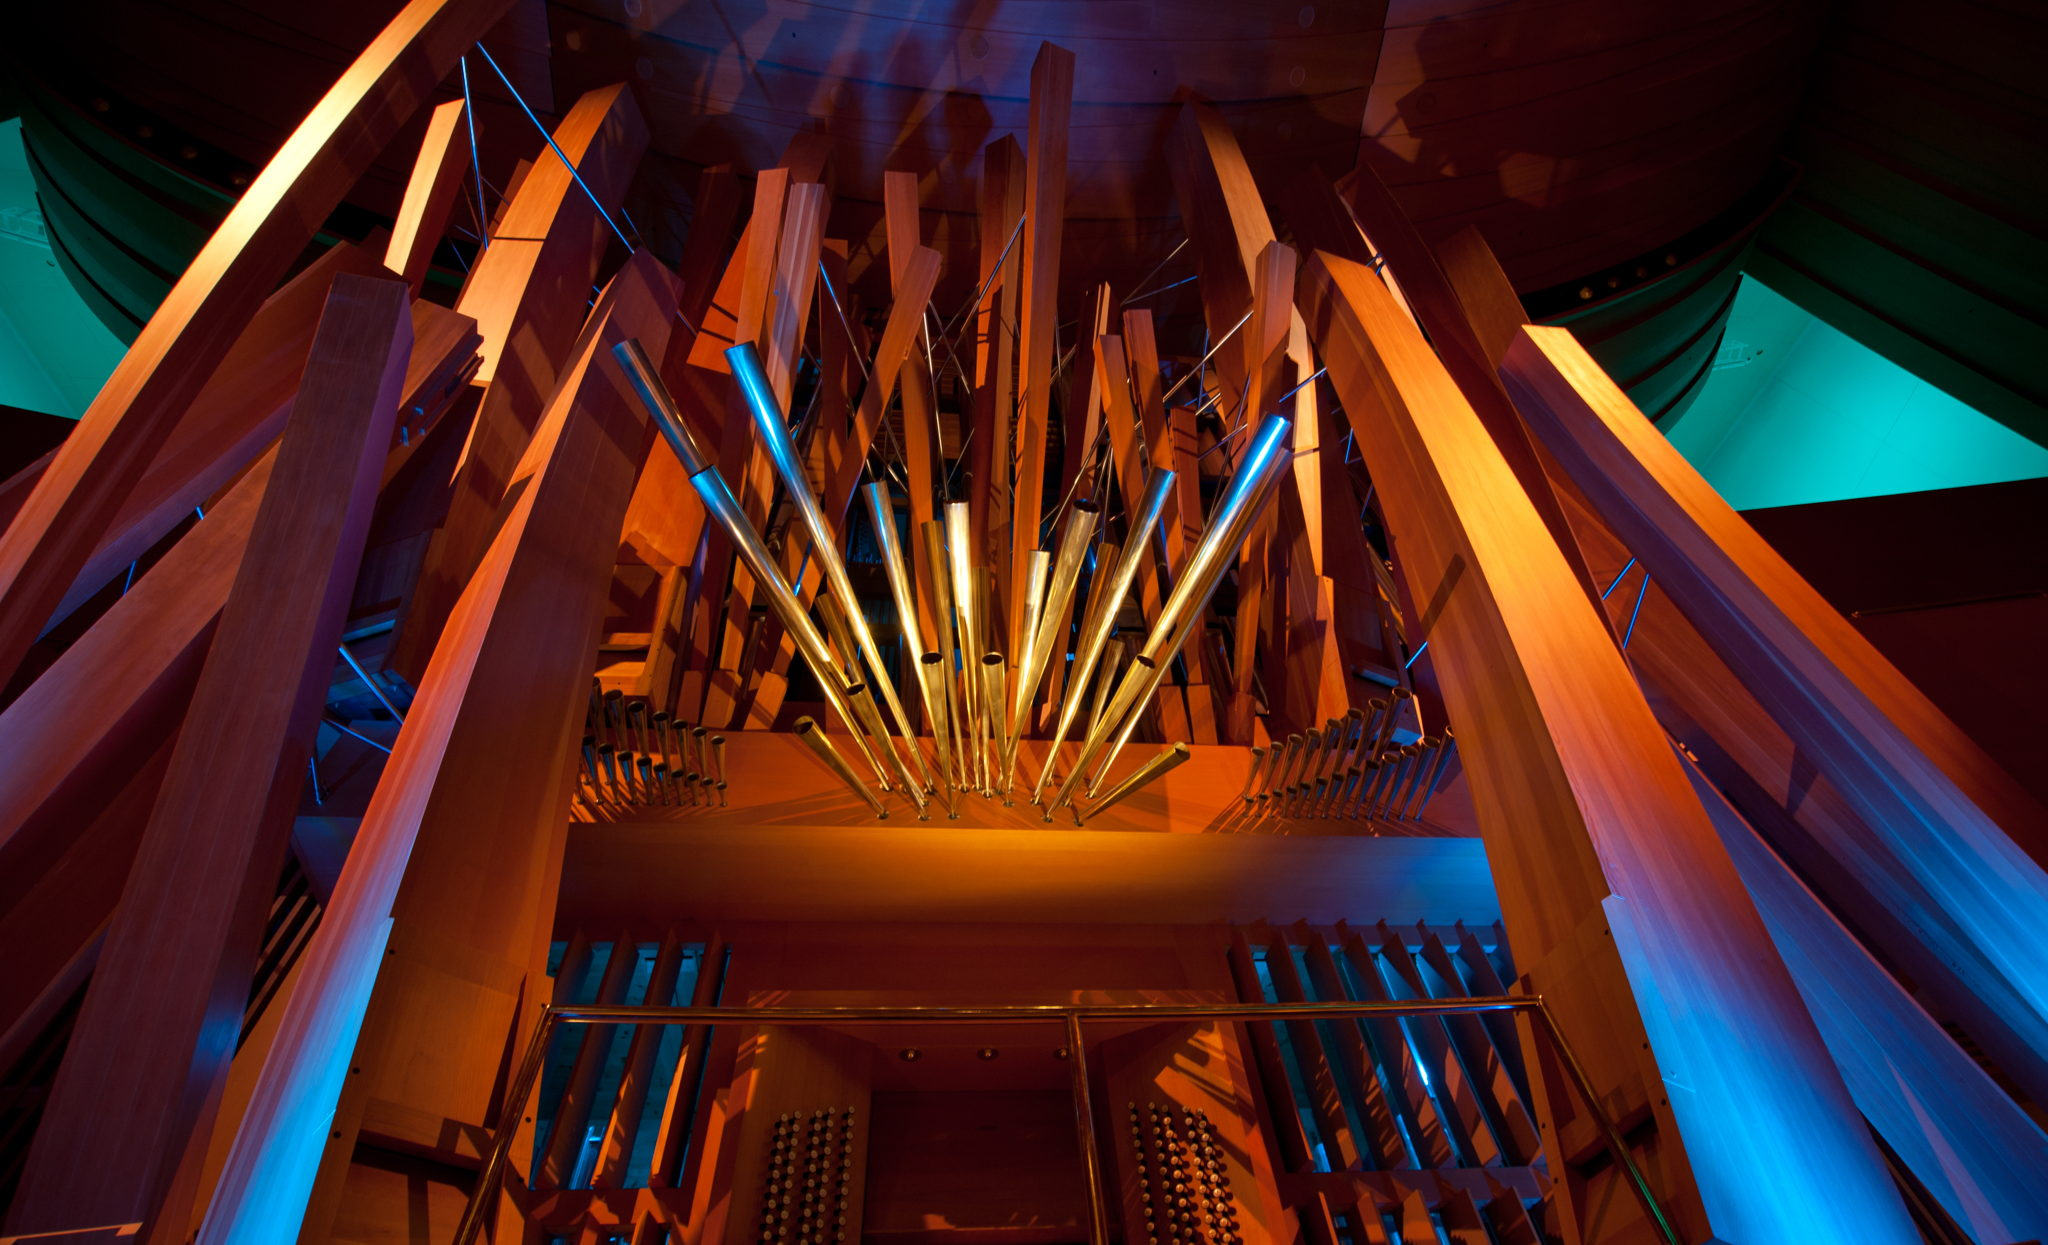 Artist Frank Gehry and organ builder Manuel Rosales collaborated on the visual design of the organ.